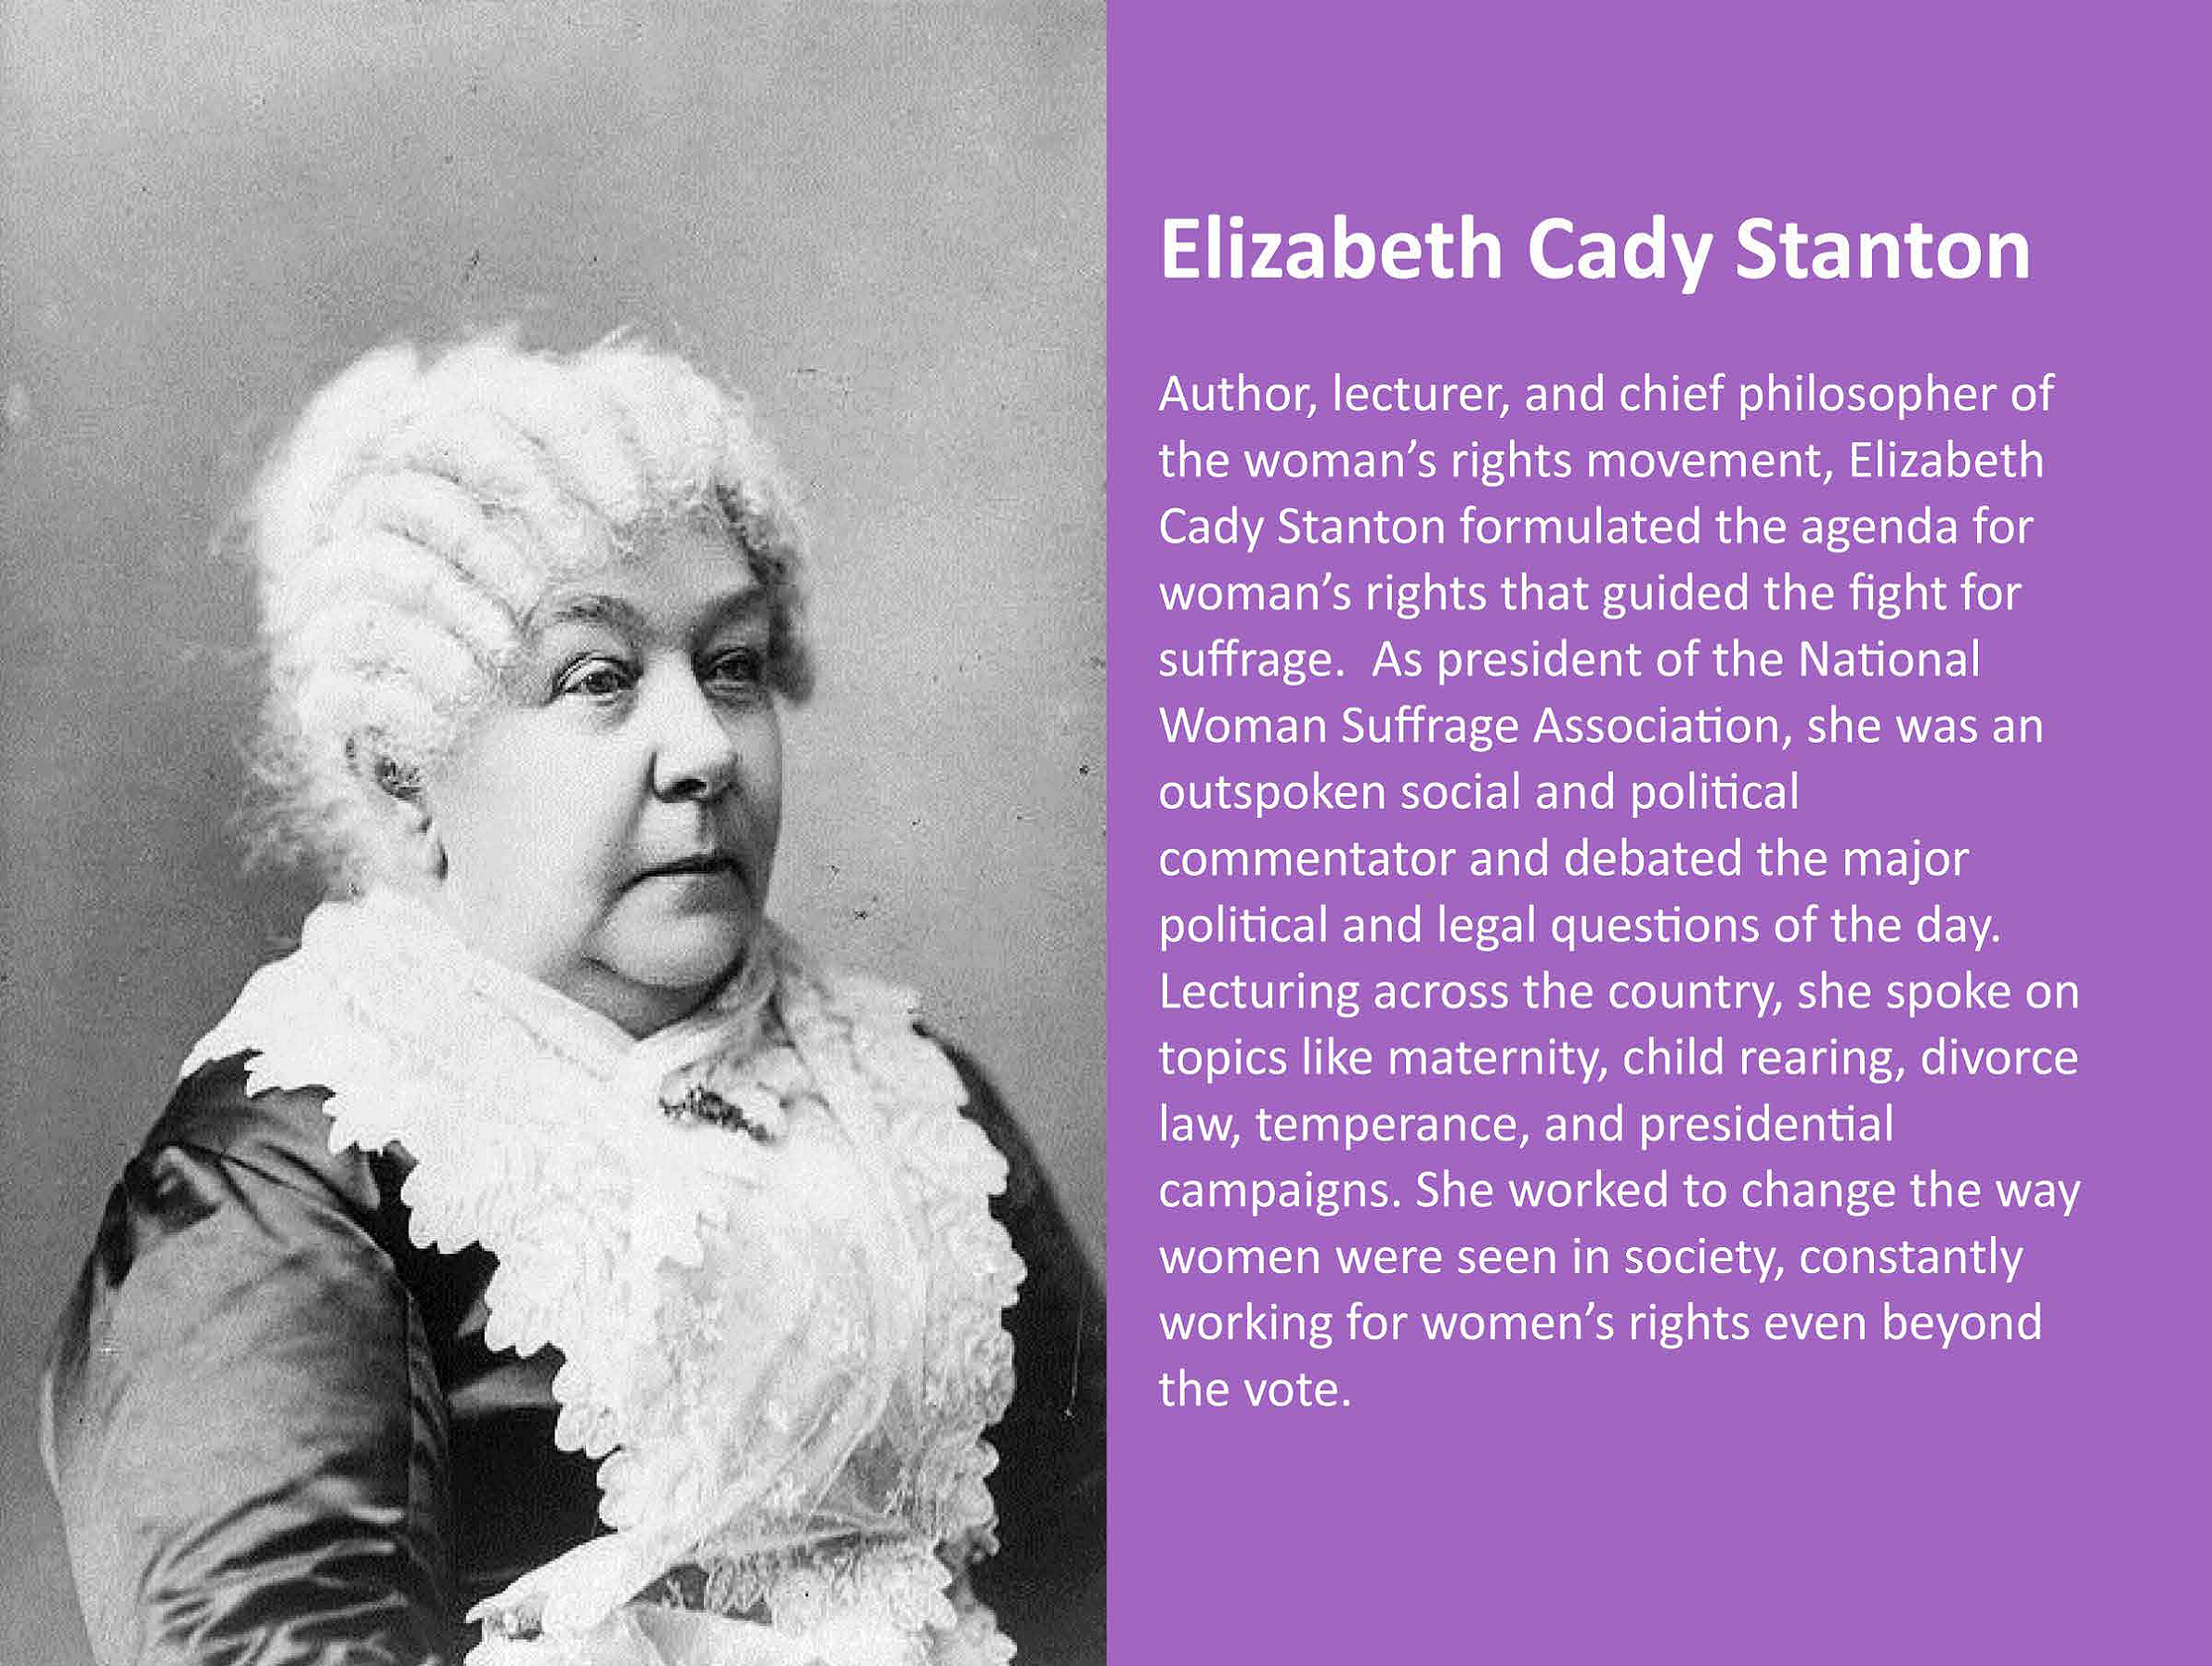 Author, lecturer, and chief philosopher of the woman's rights movement, Elizabeth Cady Stanton formulated the agenda for woman's rights that guided the fight for suffrage. As president of the National Woman Suffrage Association, she was an outspoken social and political commentator and debated the major political and legal questions of the day. Lecturing across the country, she spoke on topics like maternity, child rearing, divorce law, temperance, and presidential campaigns. She worked to change the way women were seen in society, constantly working for women's rights even beyond the vote.